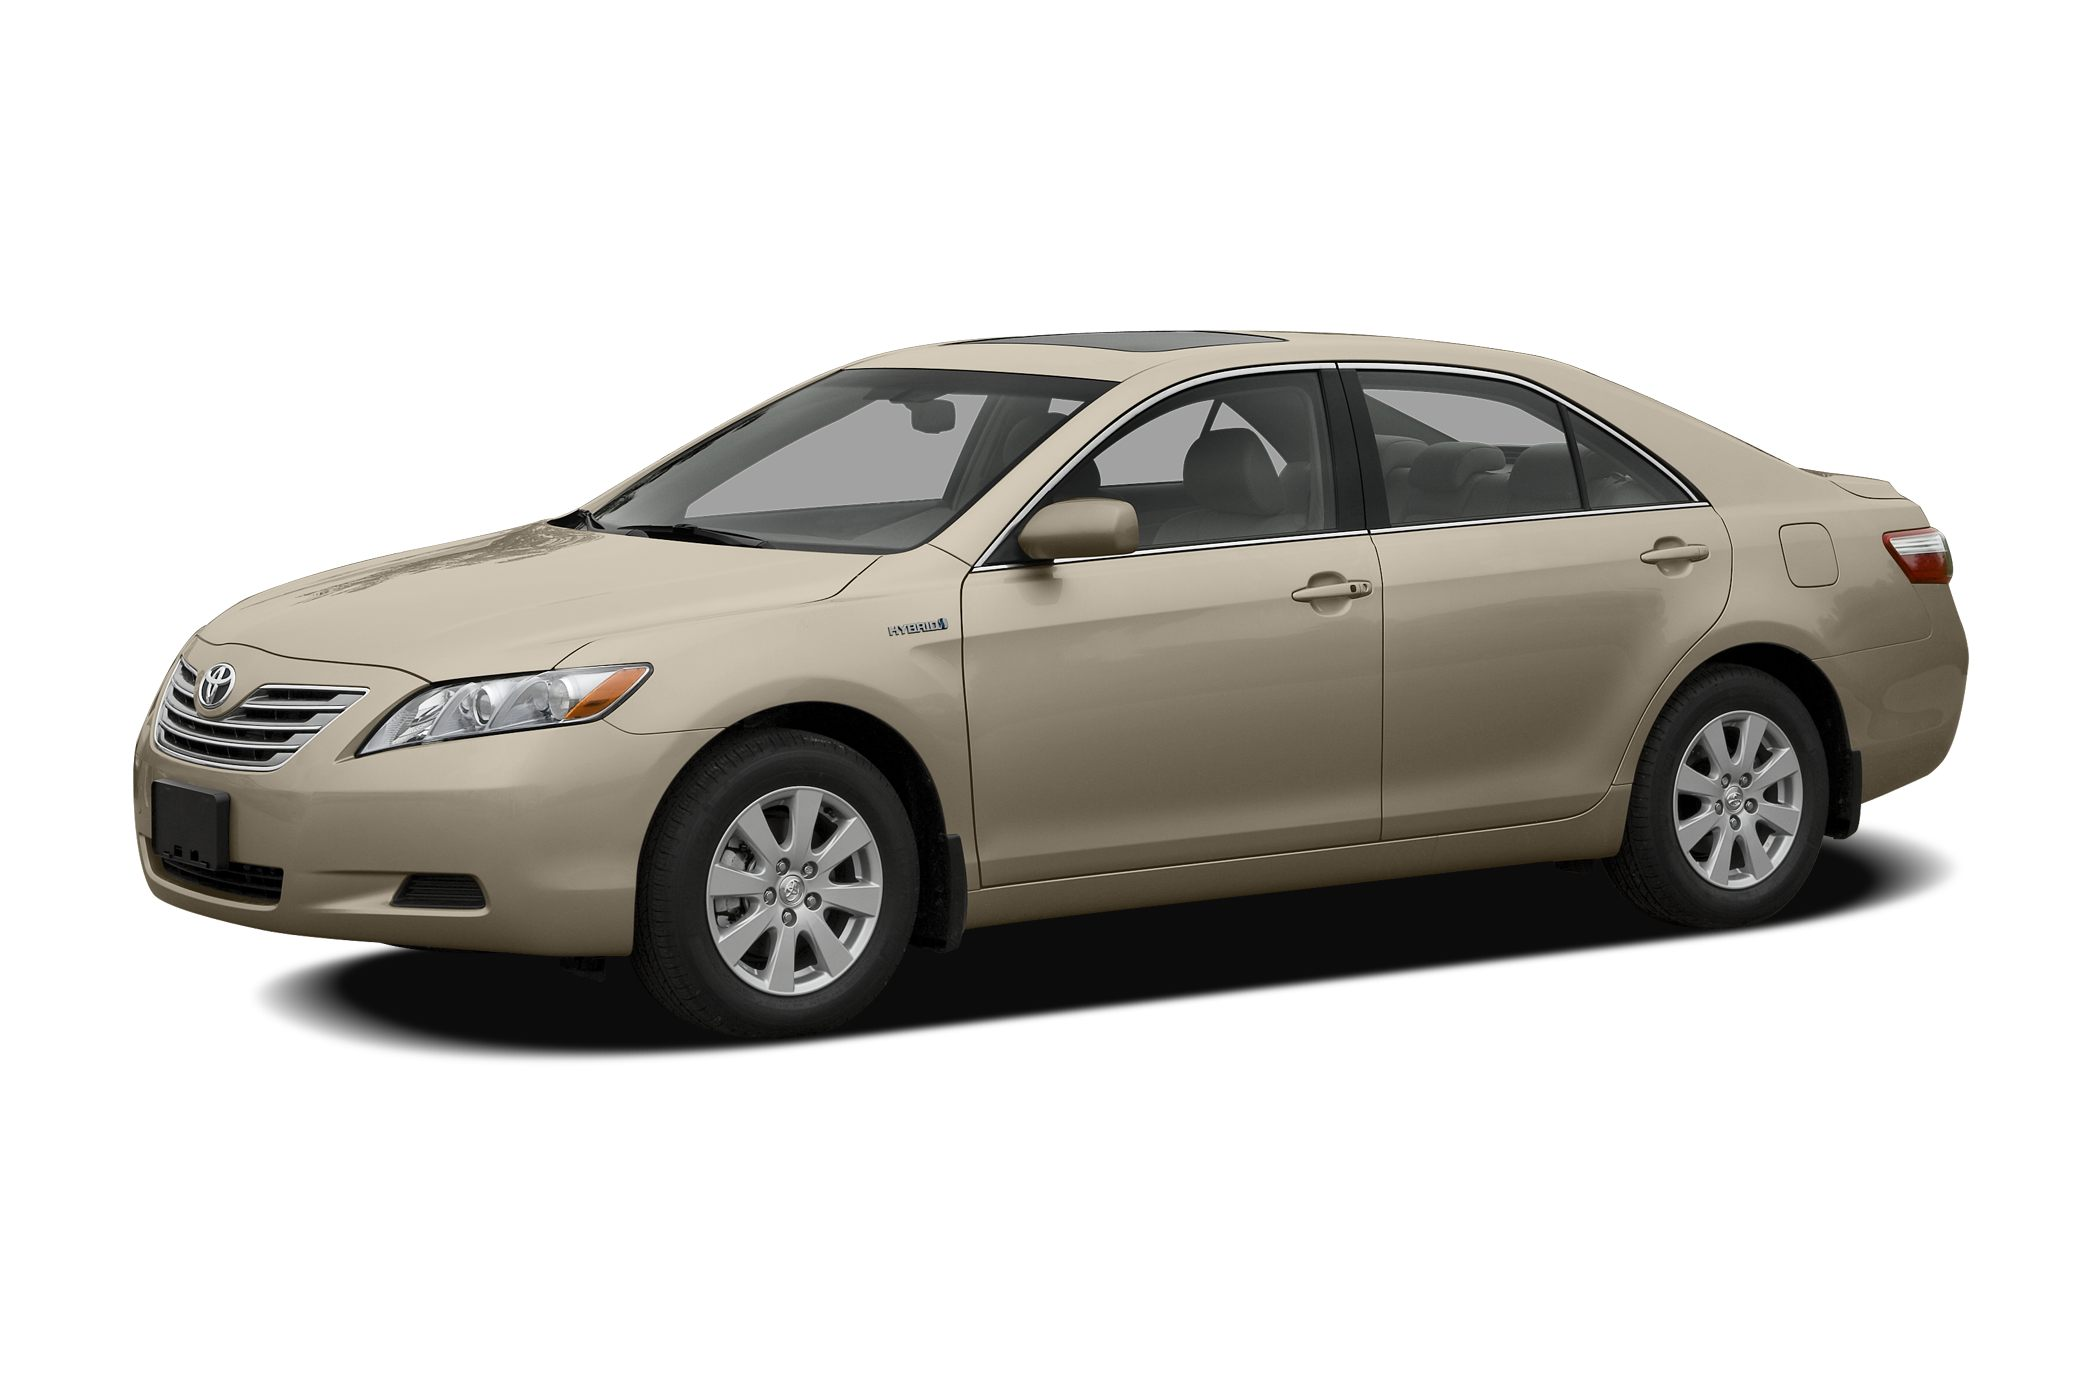 2008 Toyota Camry Hybrid Base 24L I4 Hybrid and Cloth Seating youll fit right into Has the mark